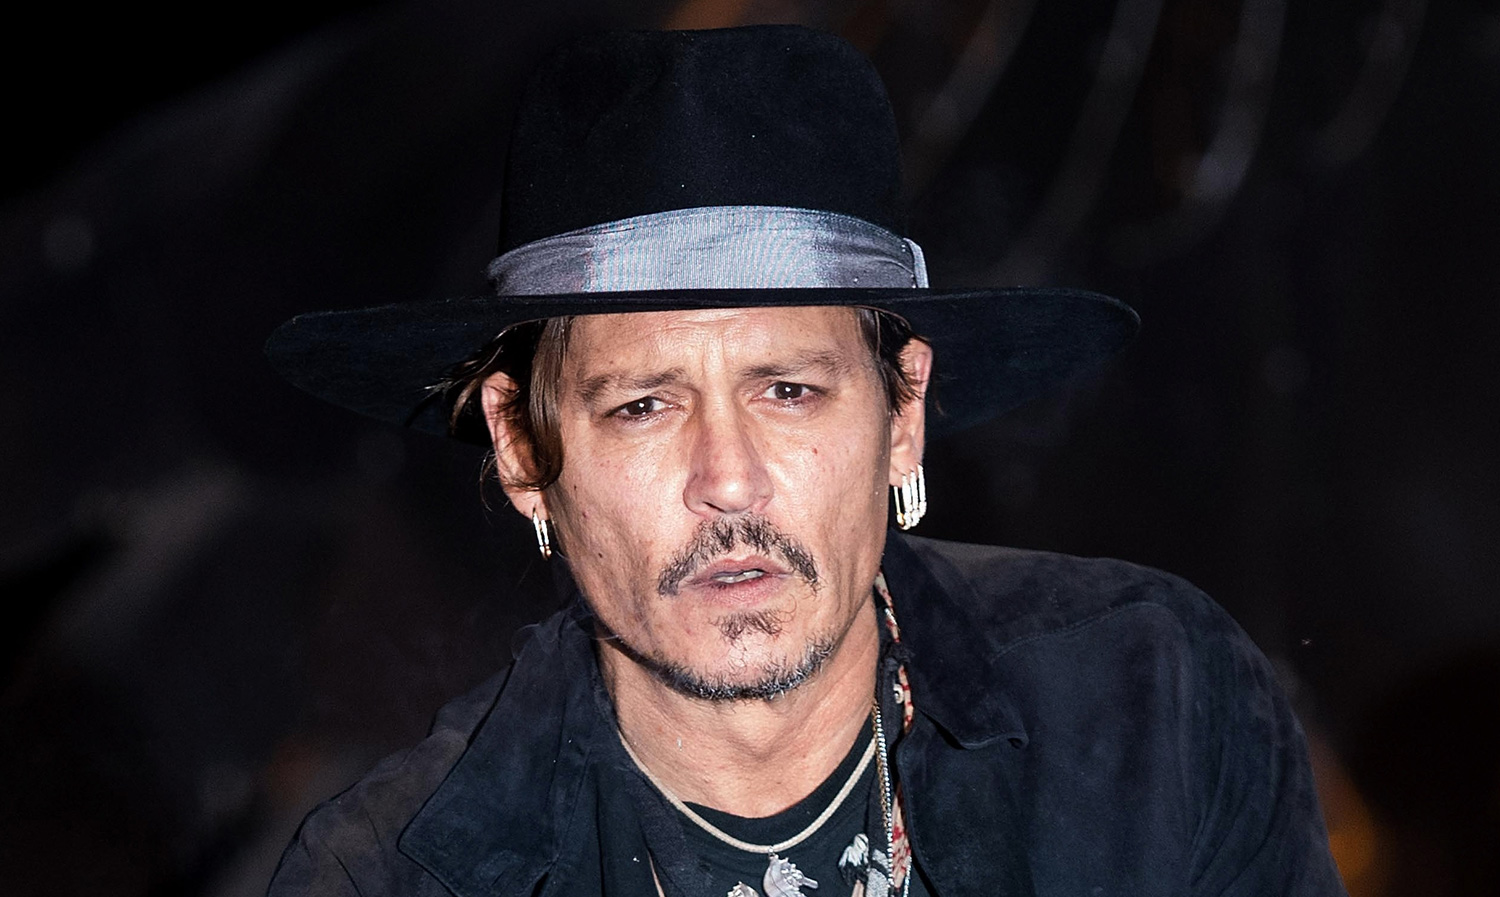 White House Responds to Johnny Depp's Remarks About Trump ...